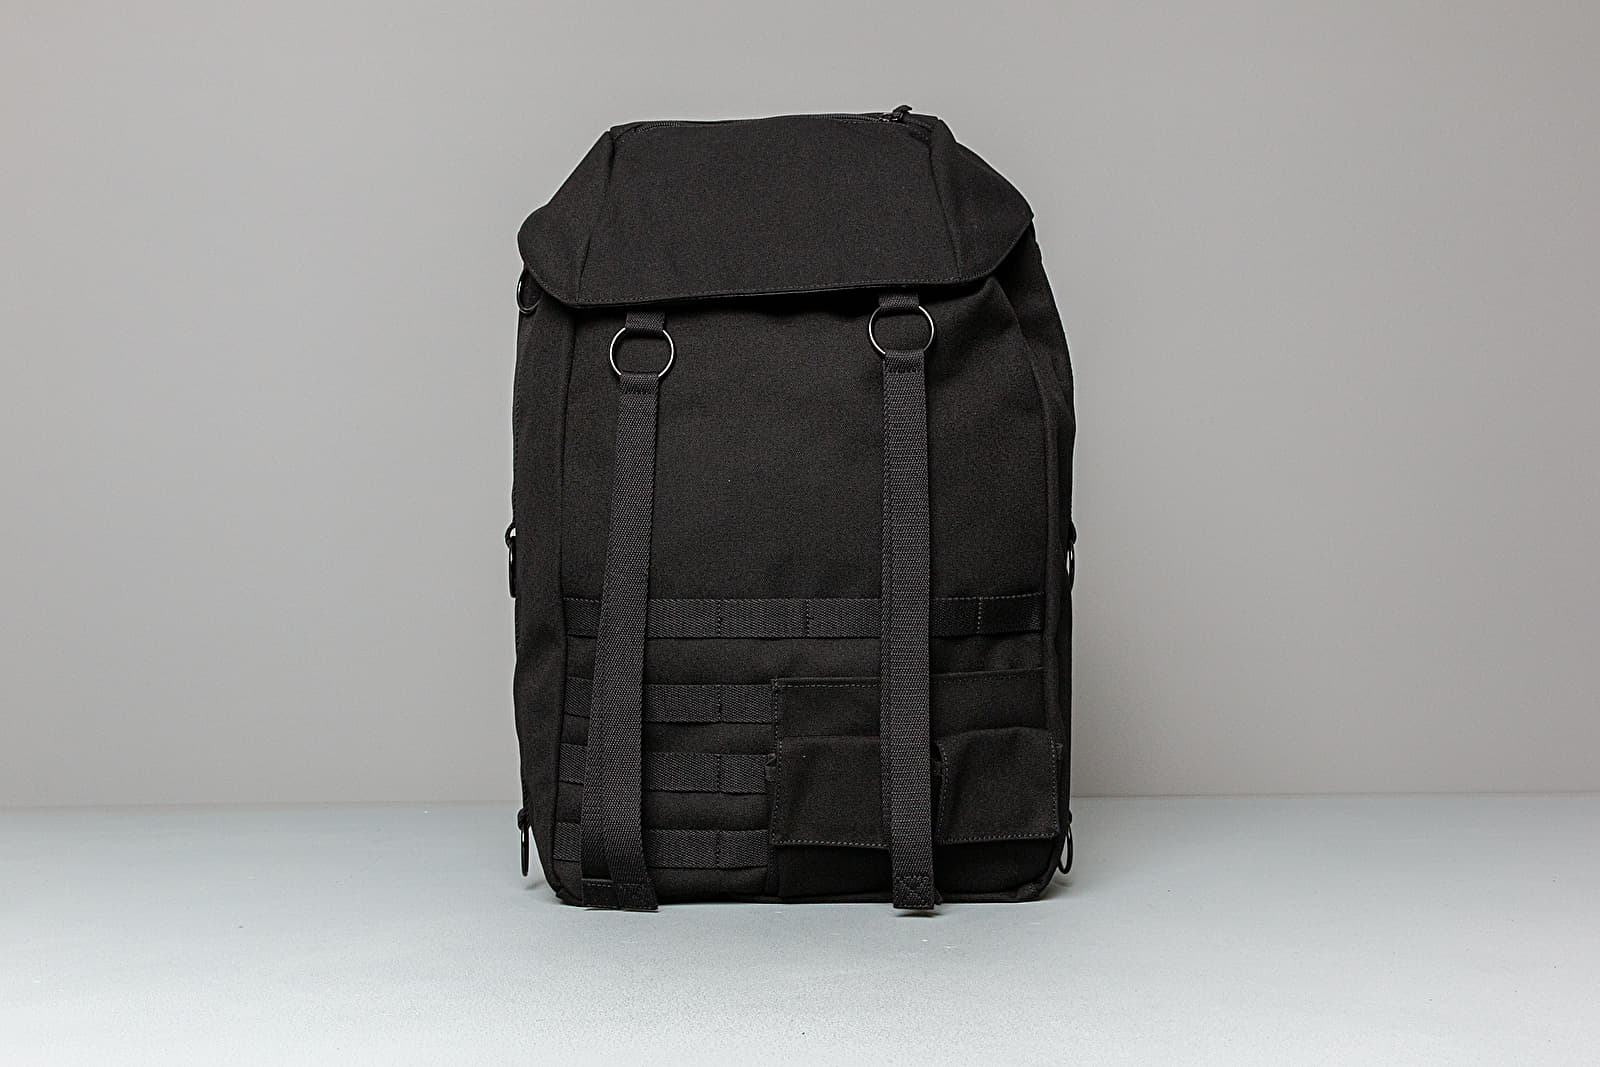 Eastpak x Raf Simons Topload Loop Backpack